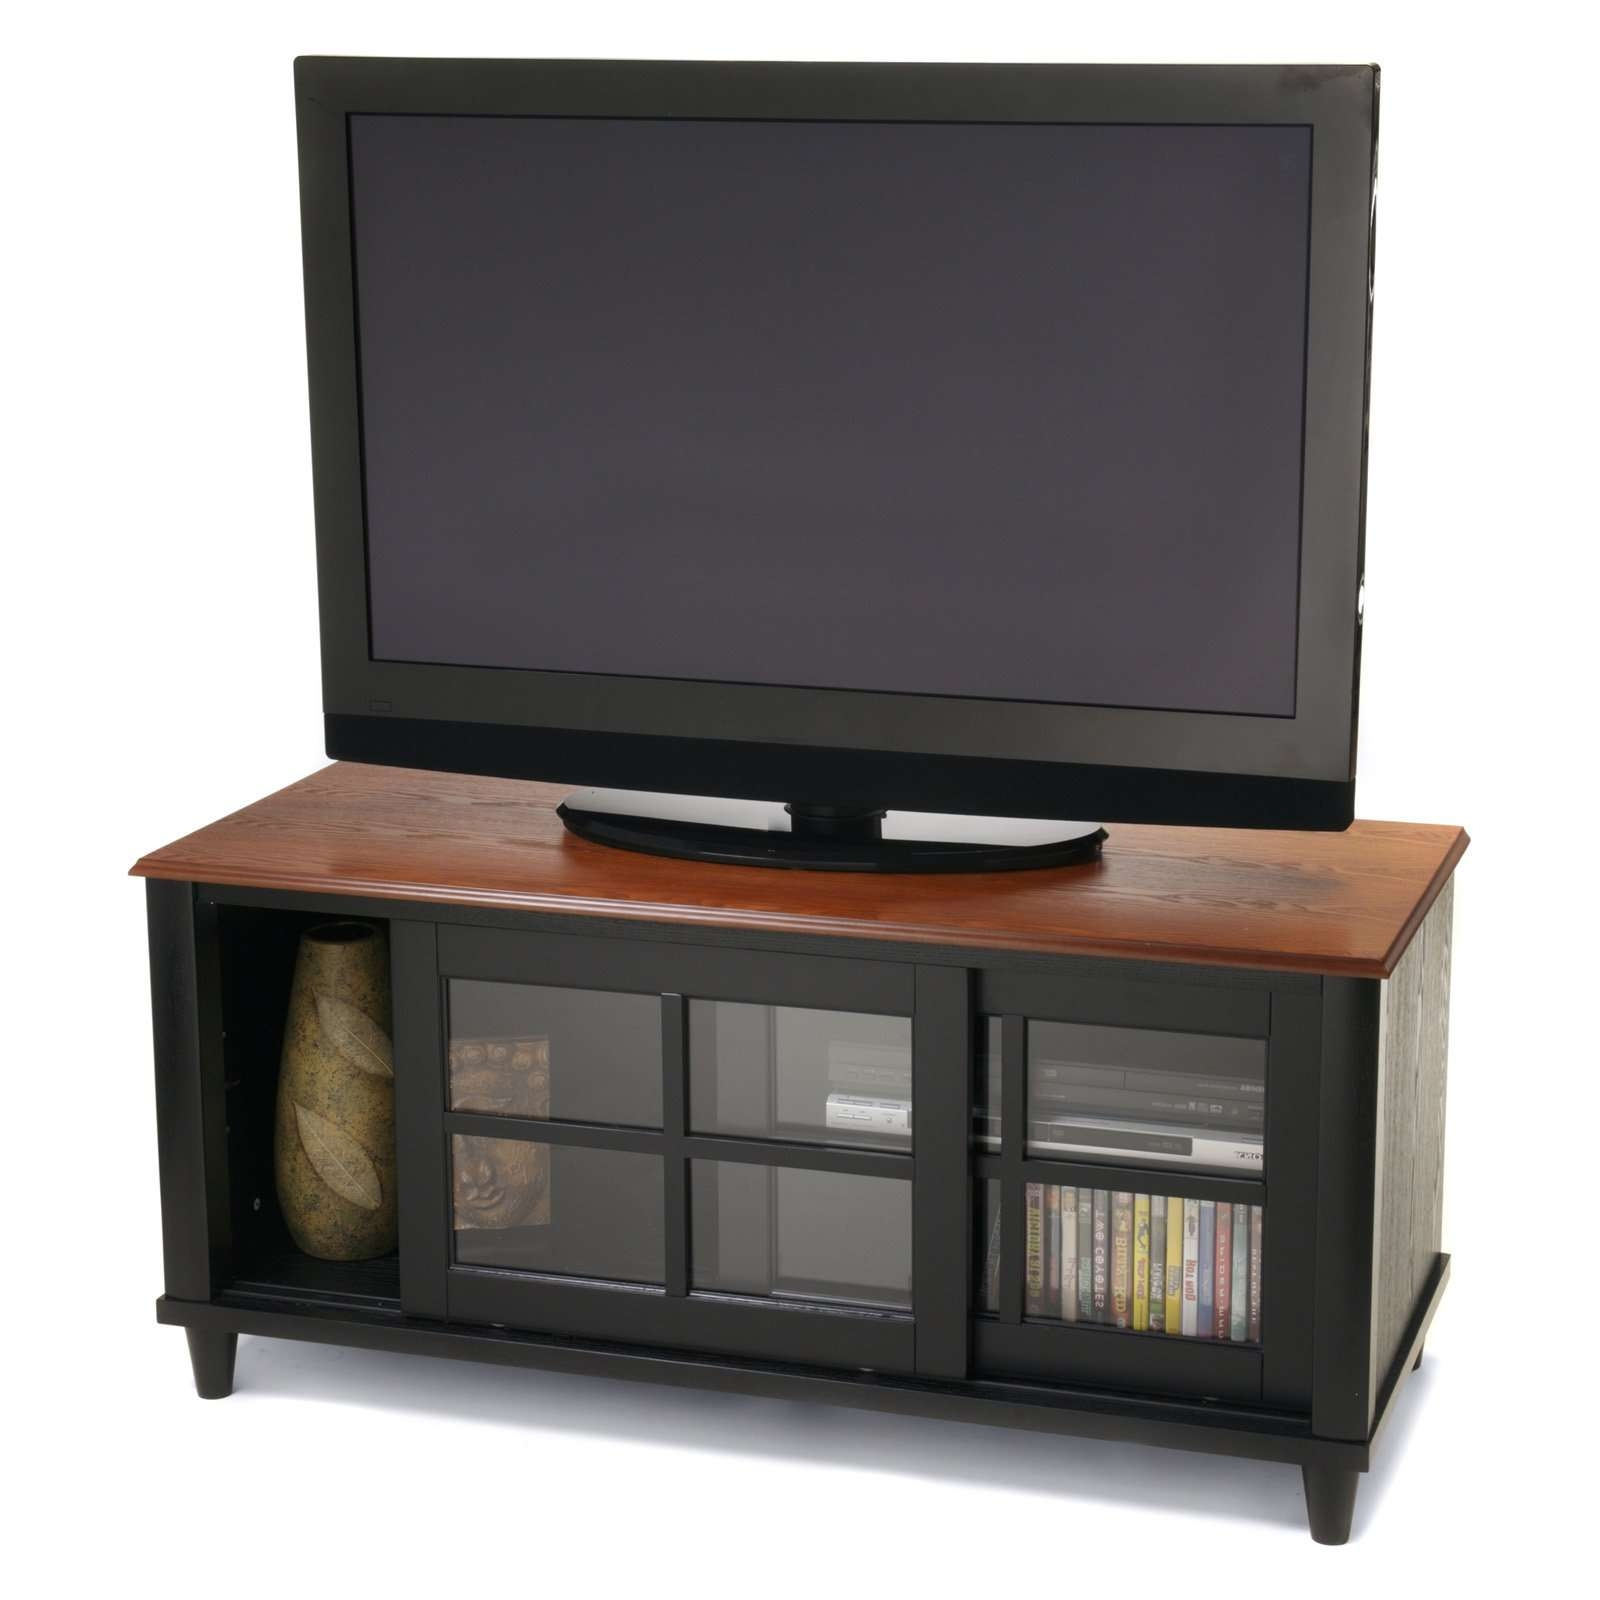 Convenience Concepts French Country Tv Stand | Hayneedle Throughout French Country Tv Cabinets (View 4 of 20)